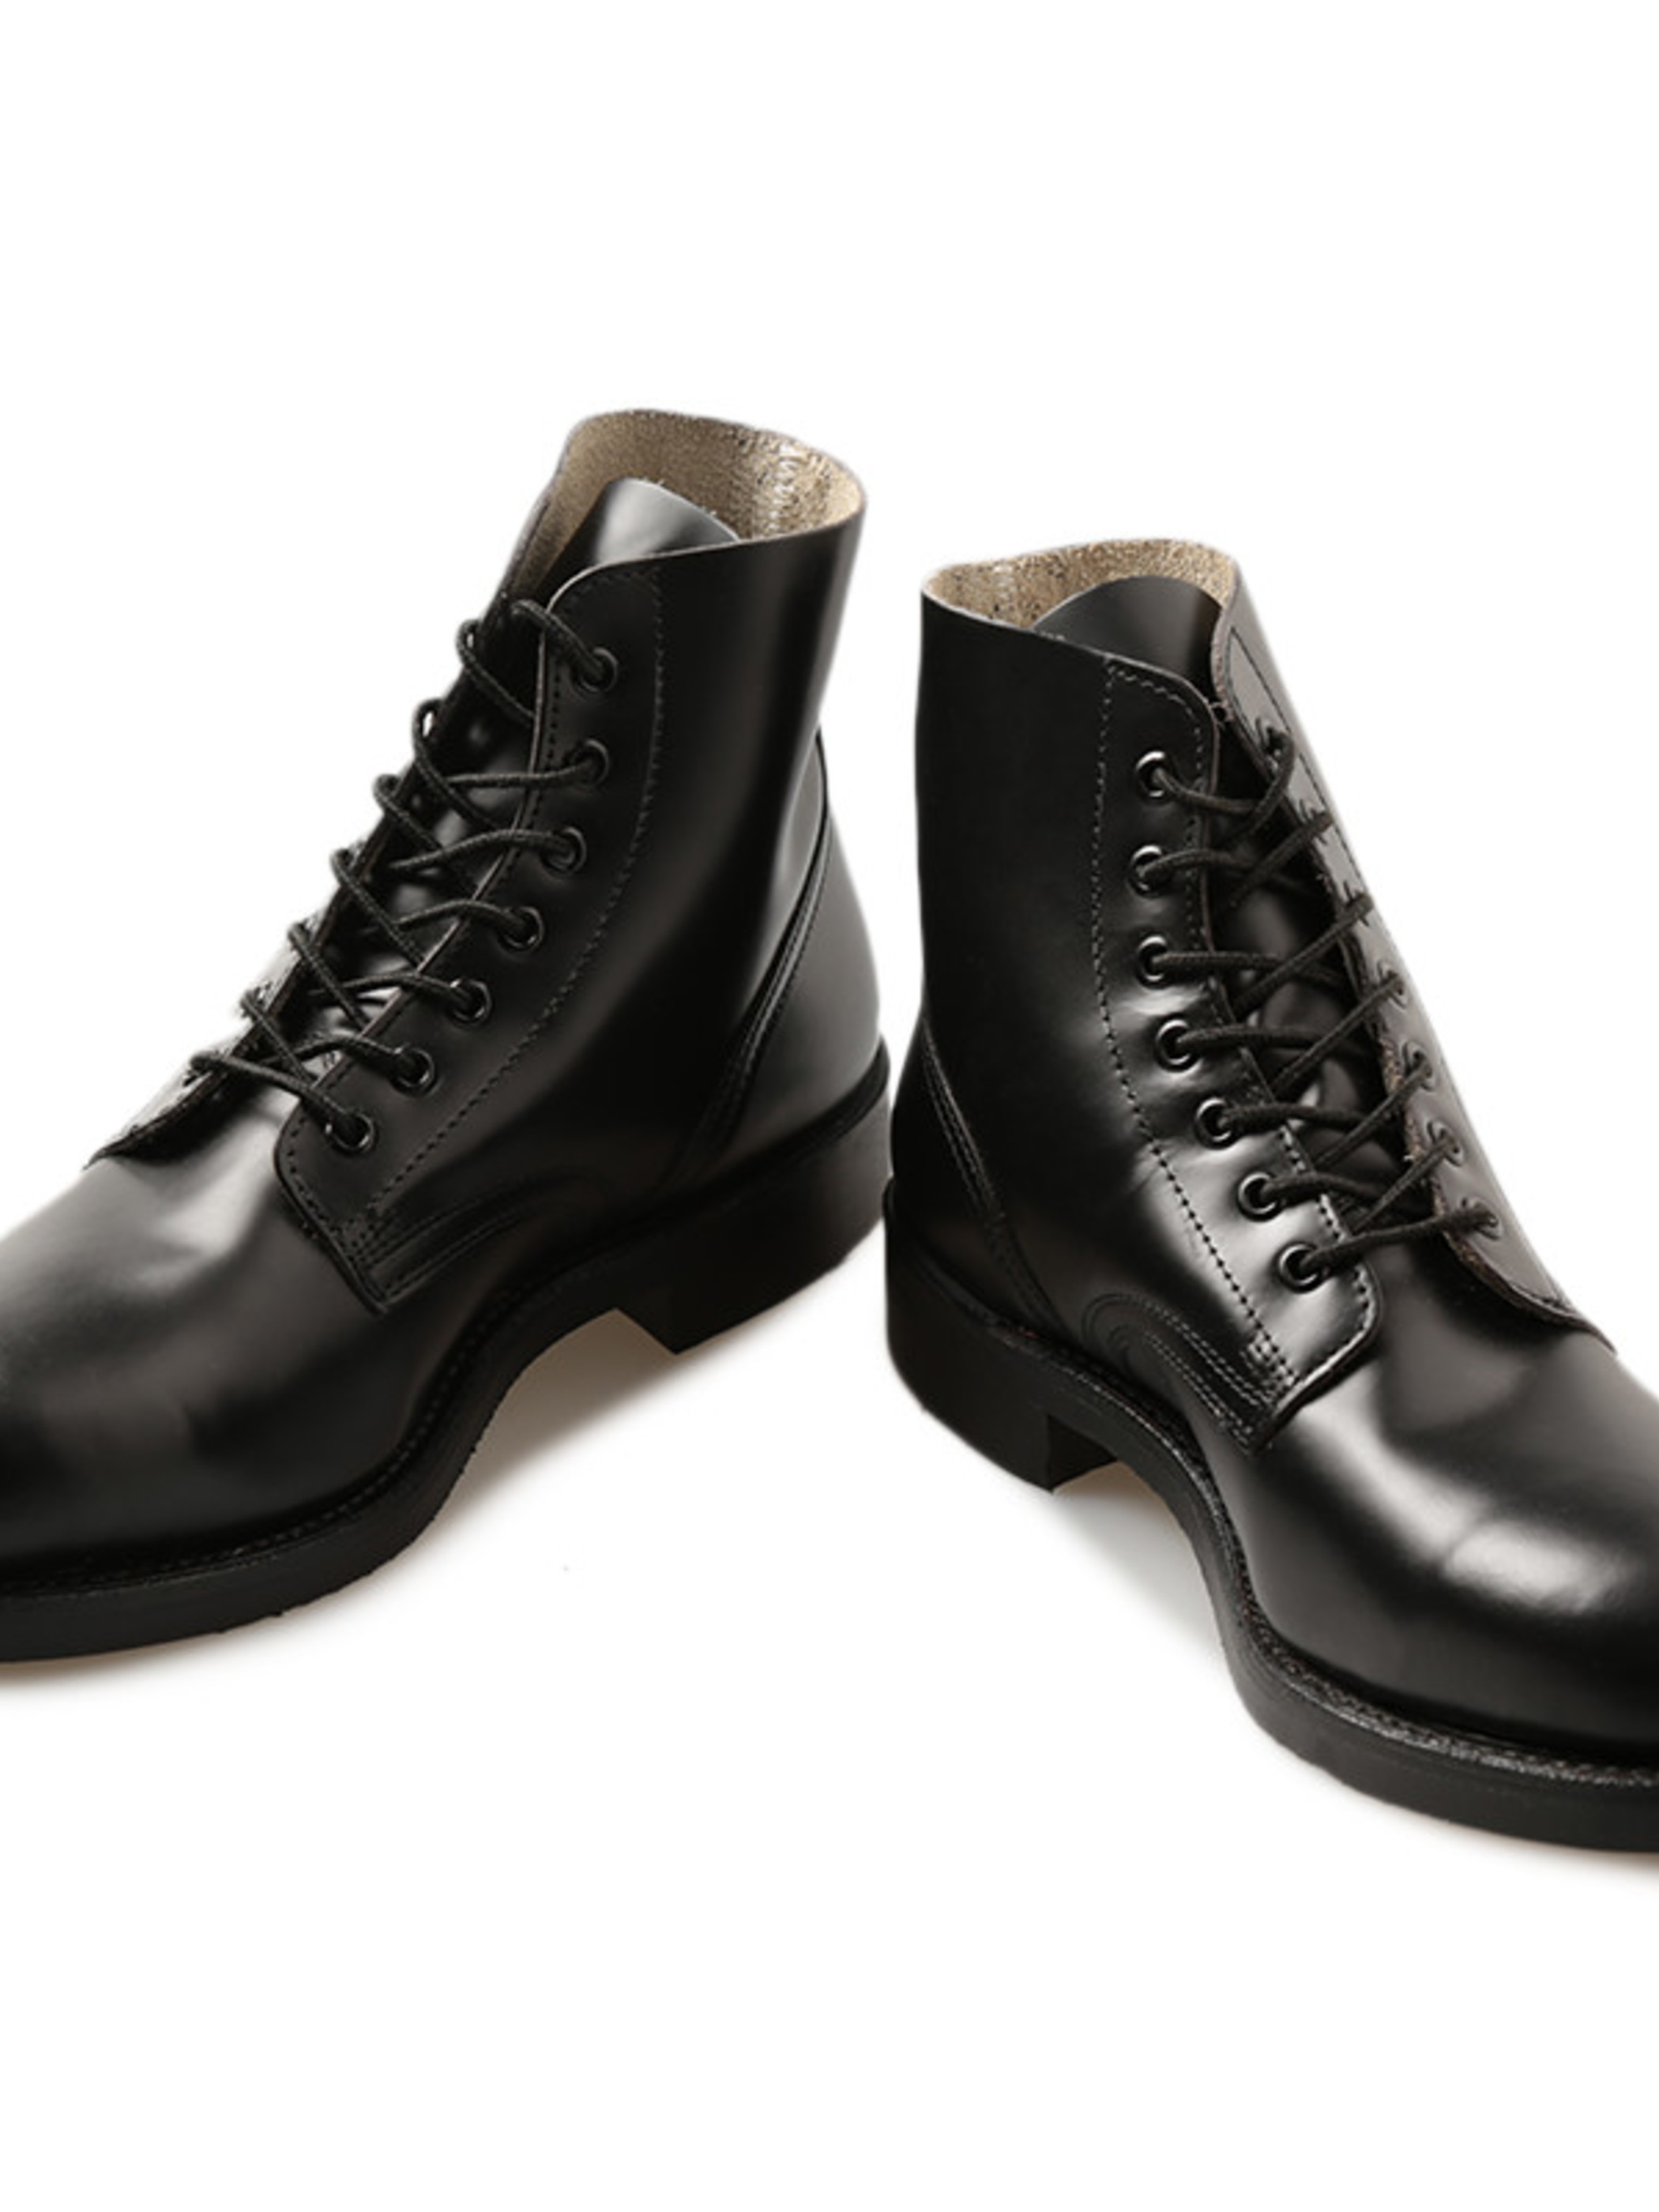 Canadian Army / Deadstock / Officer Boots